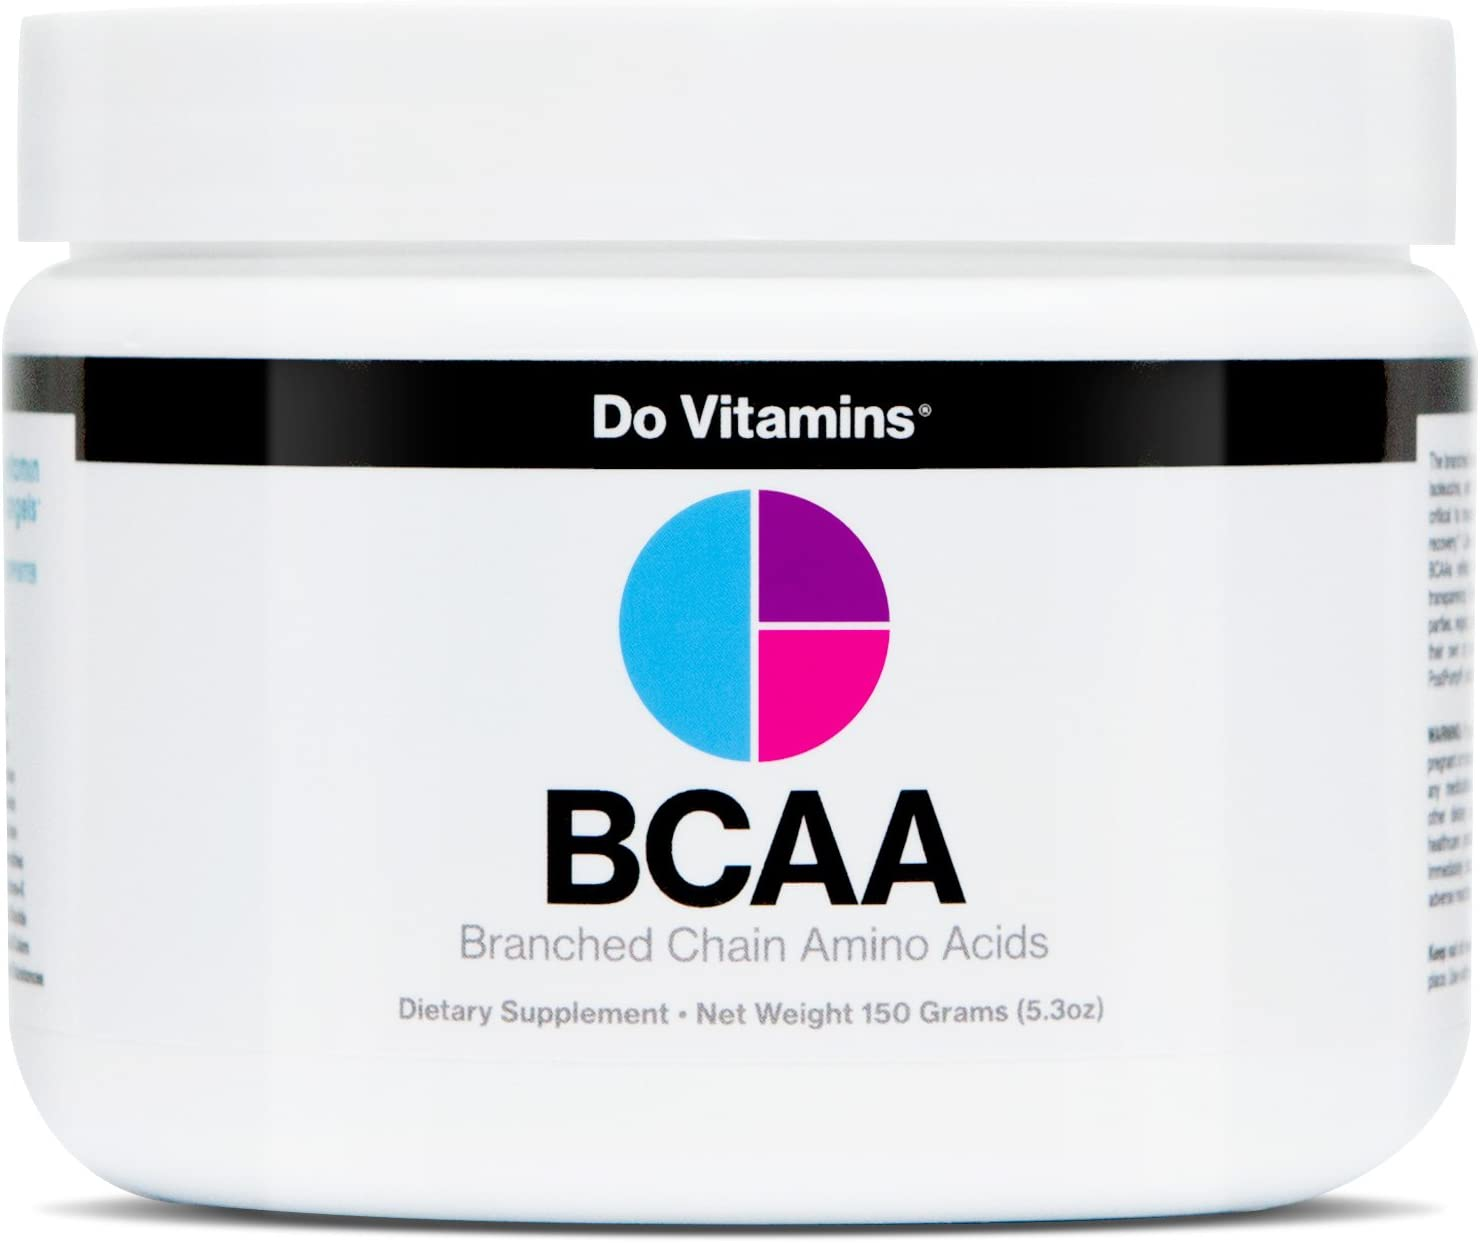 Vegan BCAA Powder Unflavored – Branched Chain Amino Acids – Clean BCAA Powder with AjiPure Essential Amino Acids – Certified Vegan, Paleo, Keto, 2 1 1, 5000 mg 30 Servings